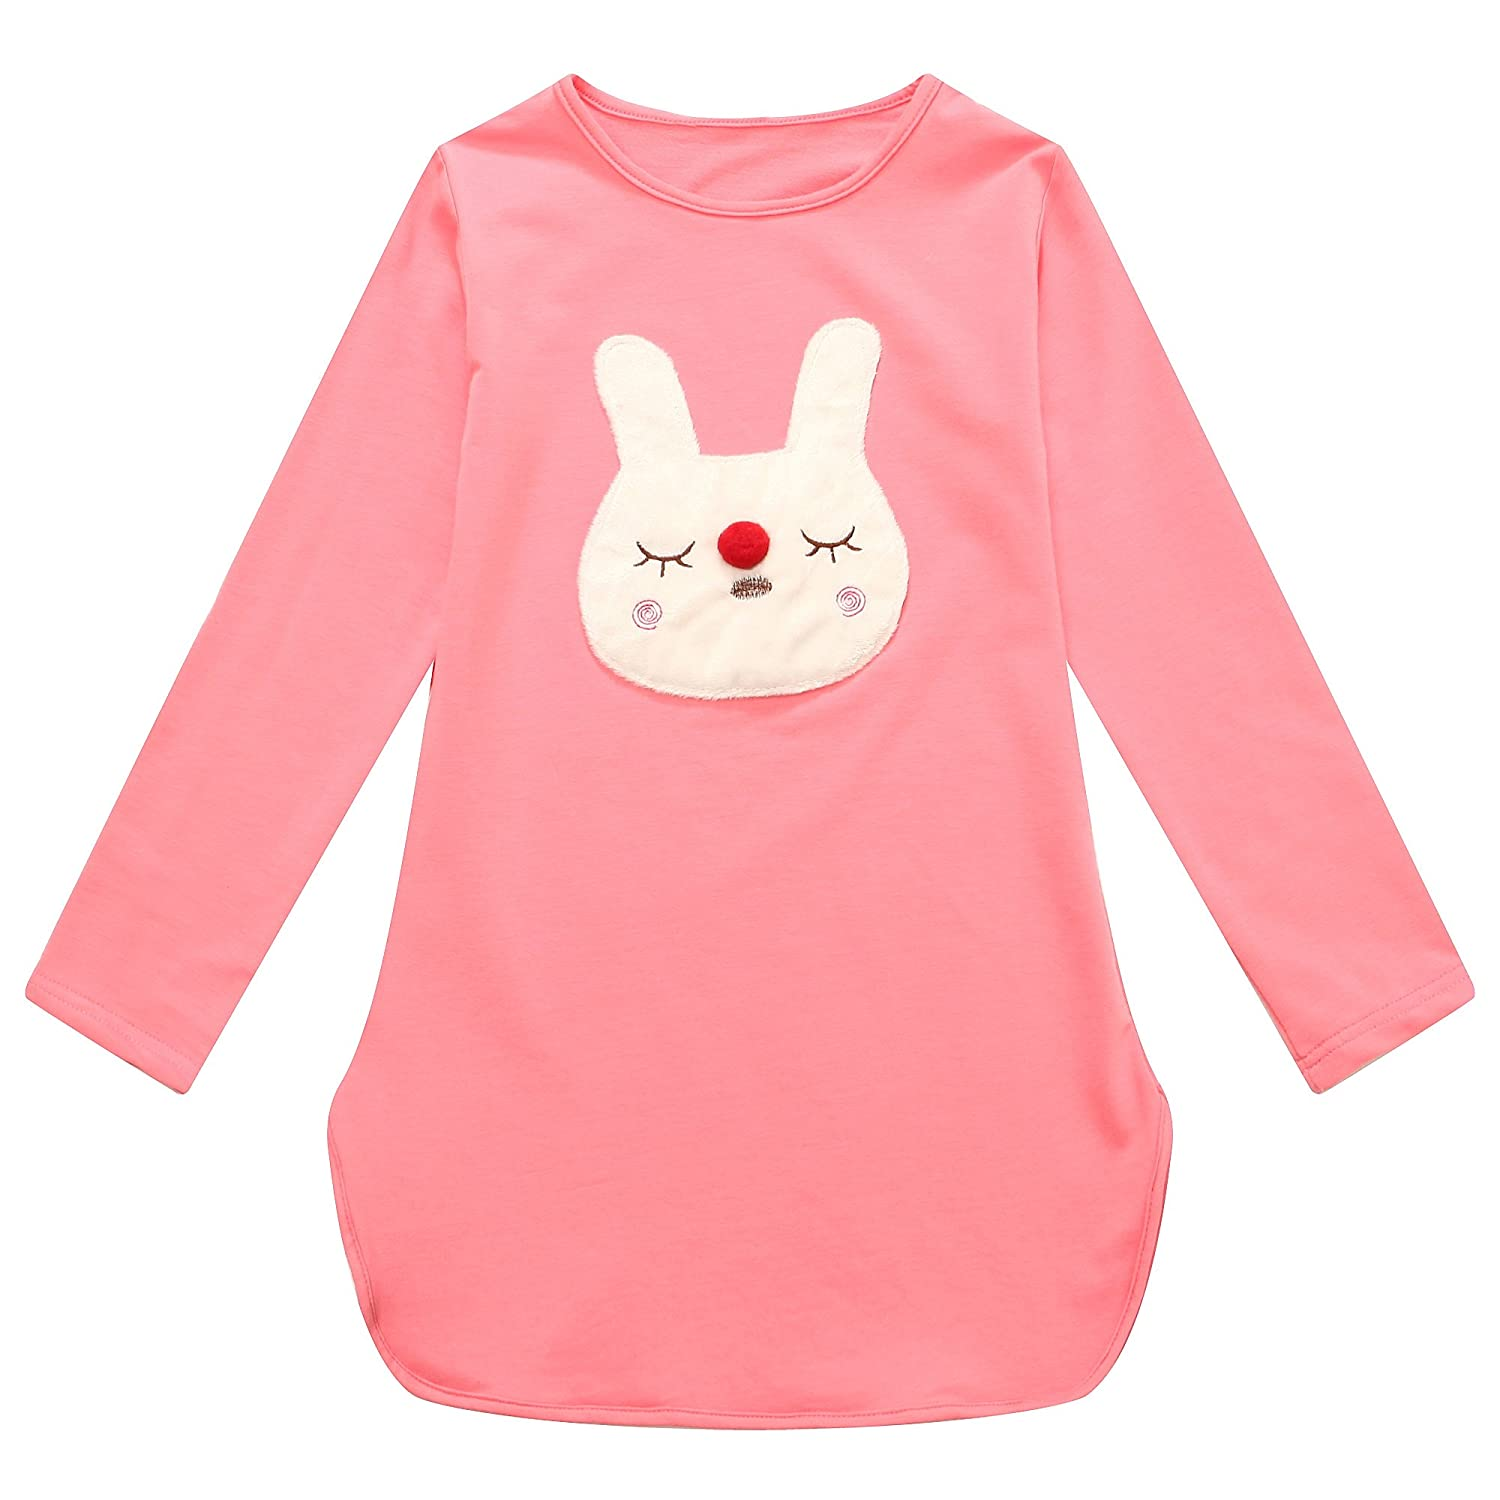 Richie House Girls' Green Bunny Applique Long Sleeved Top 2-10 RH1429